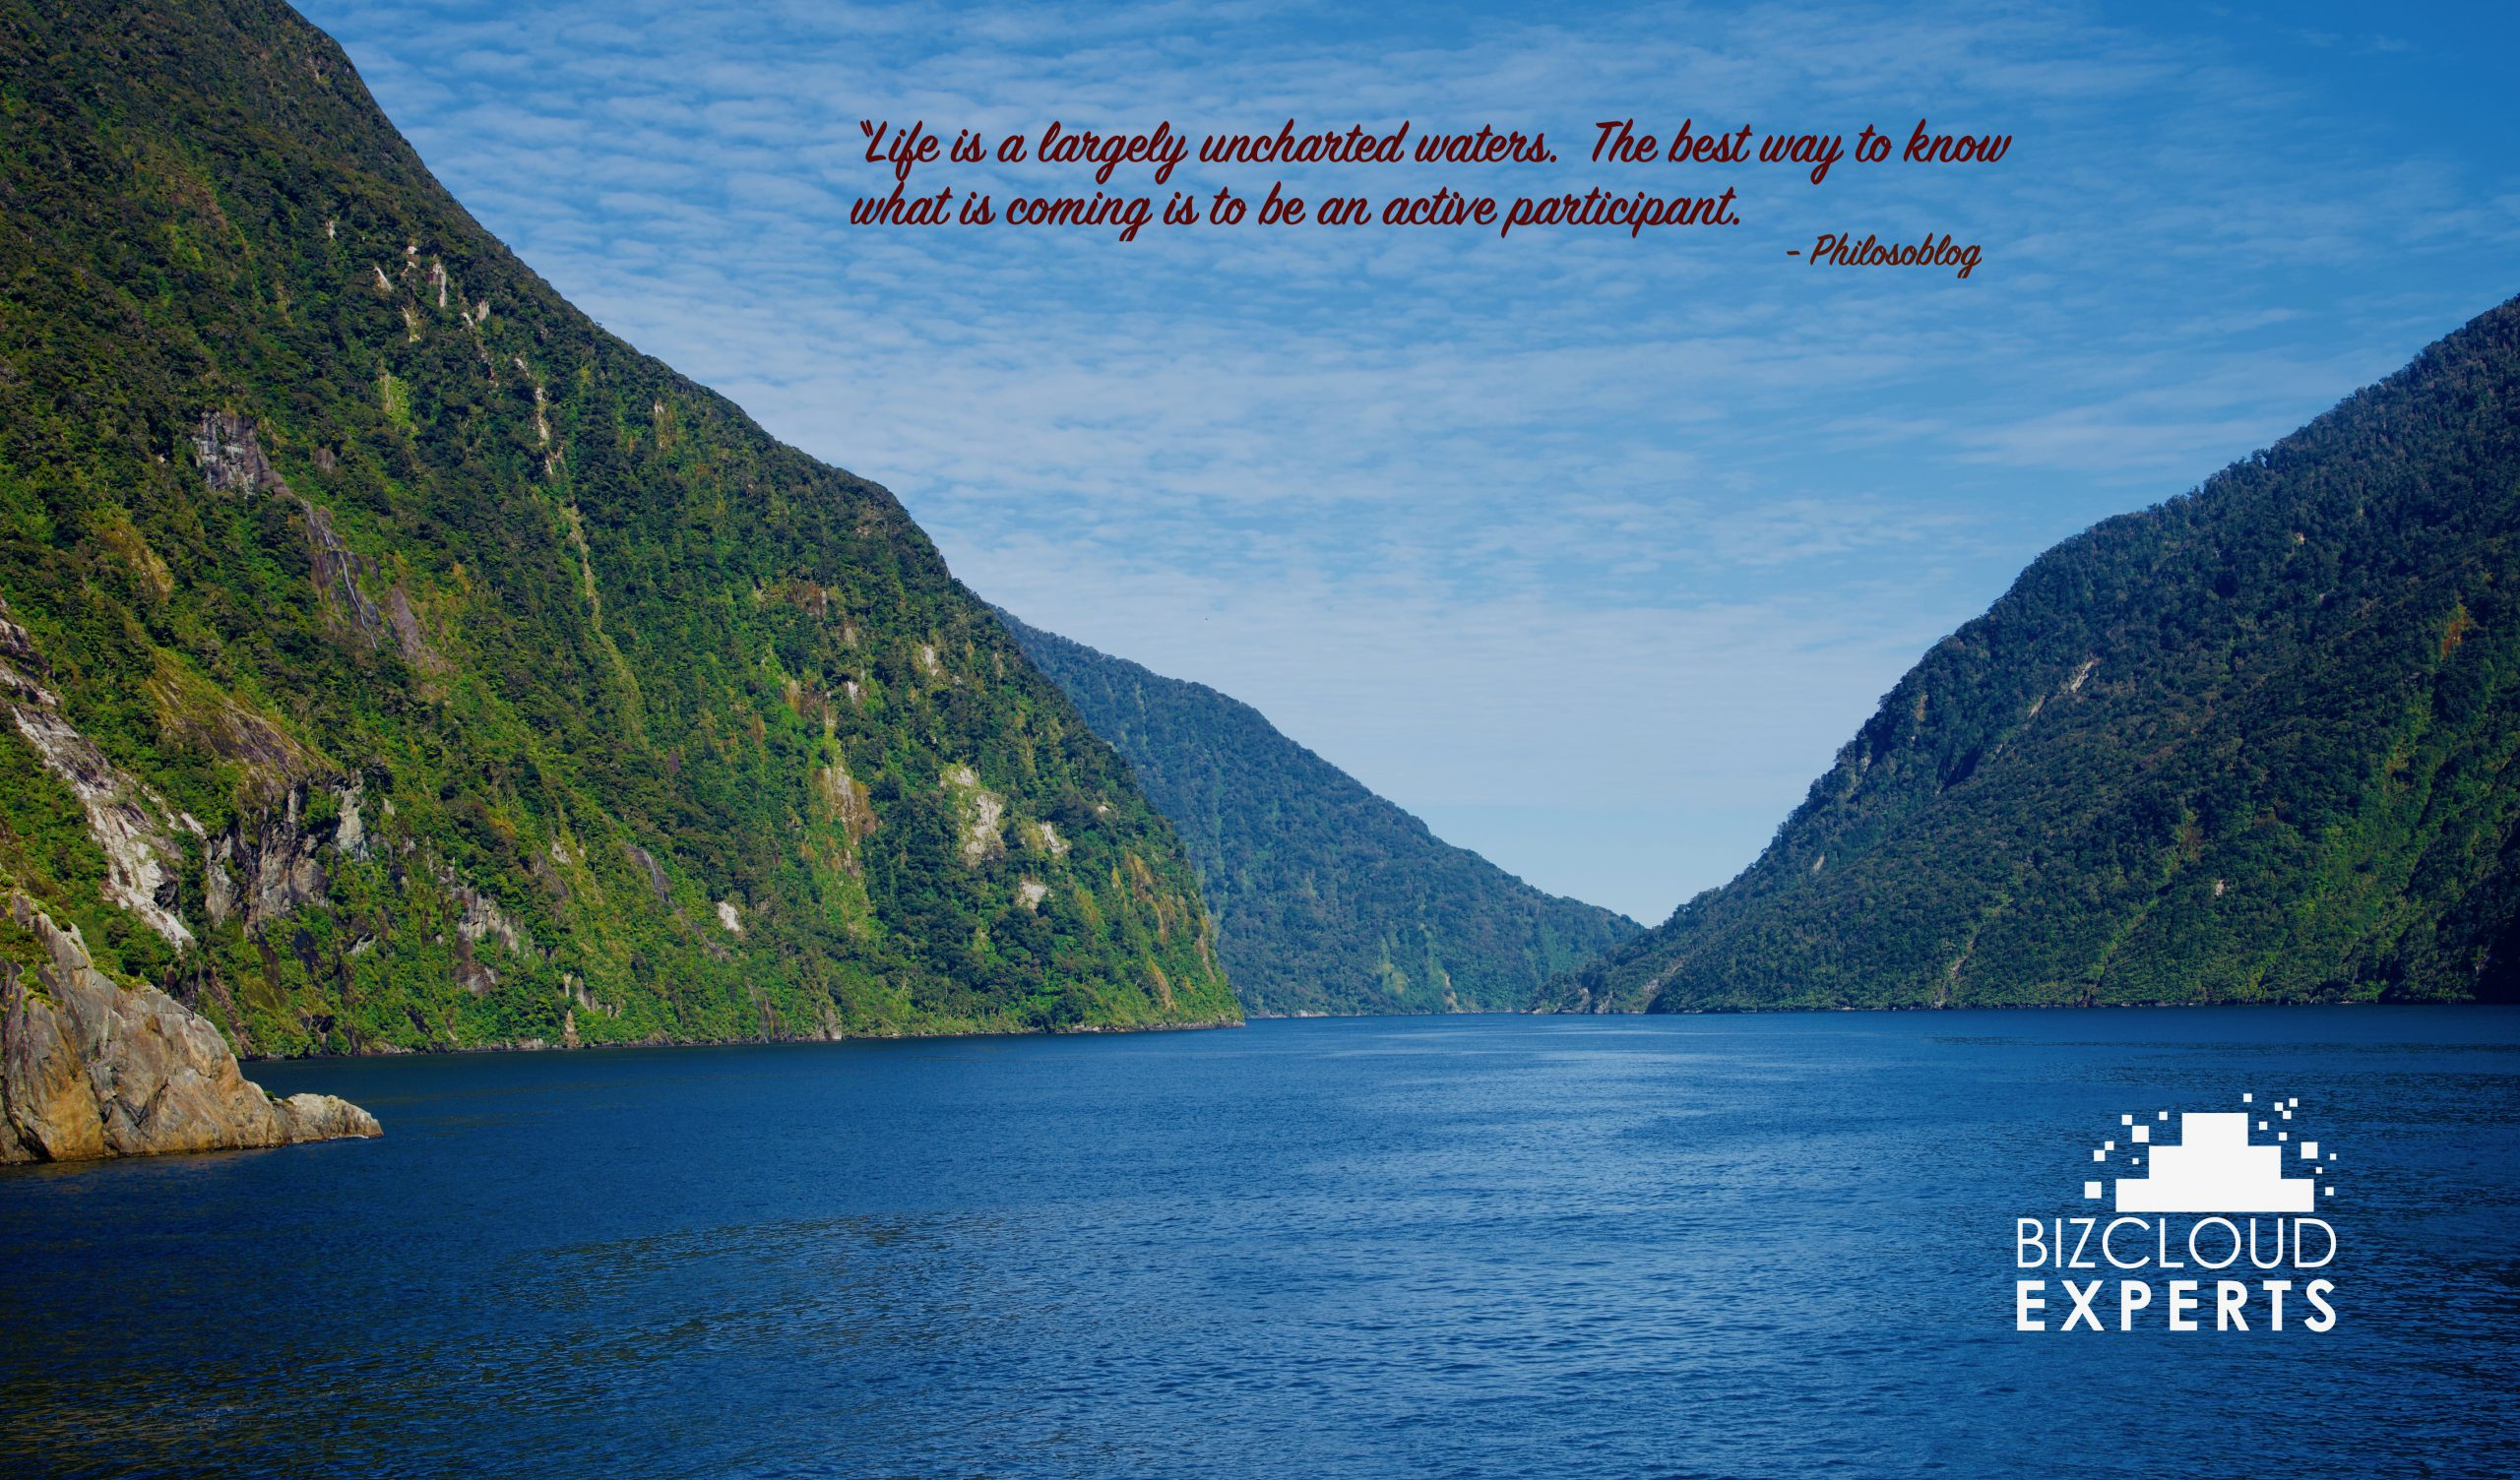 Life is largely unchartered waters